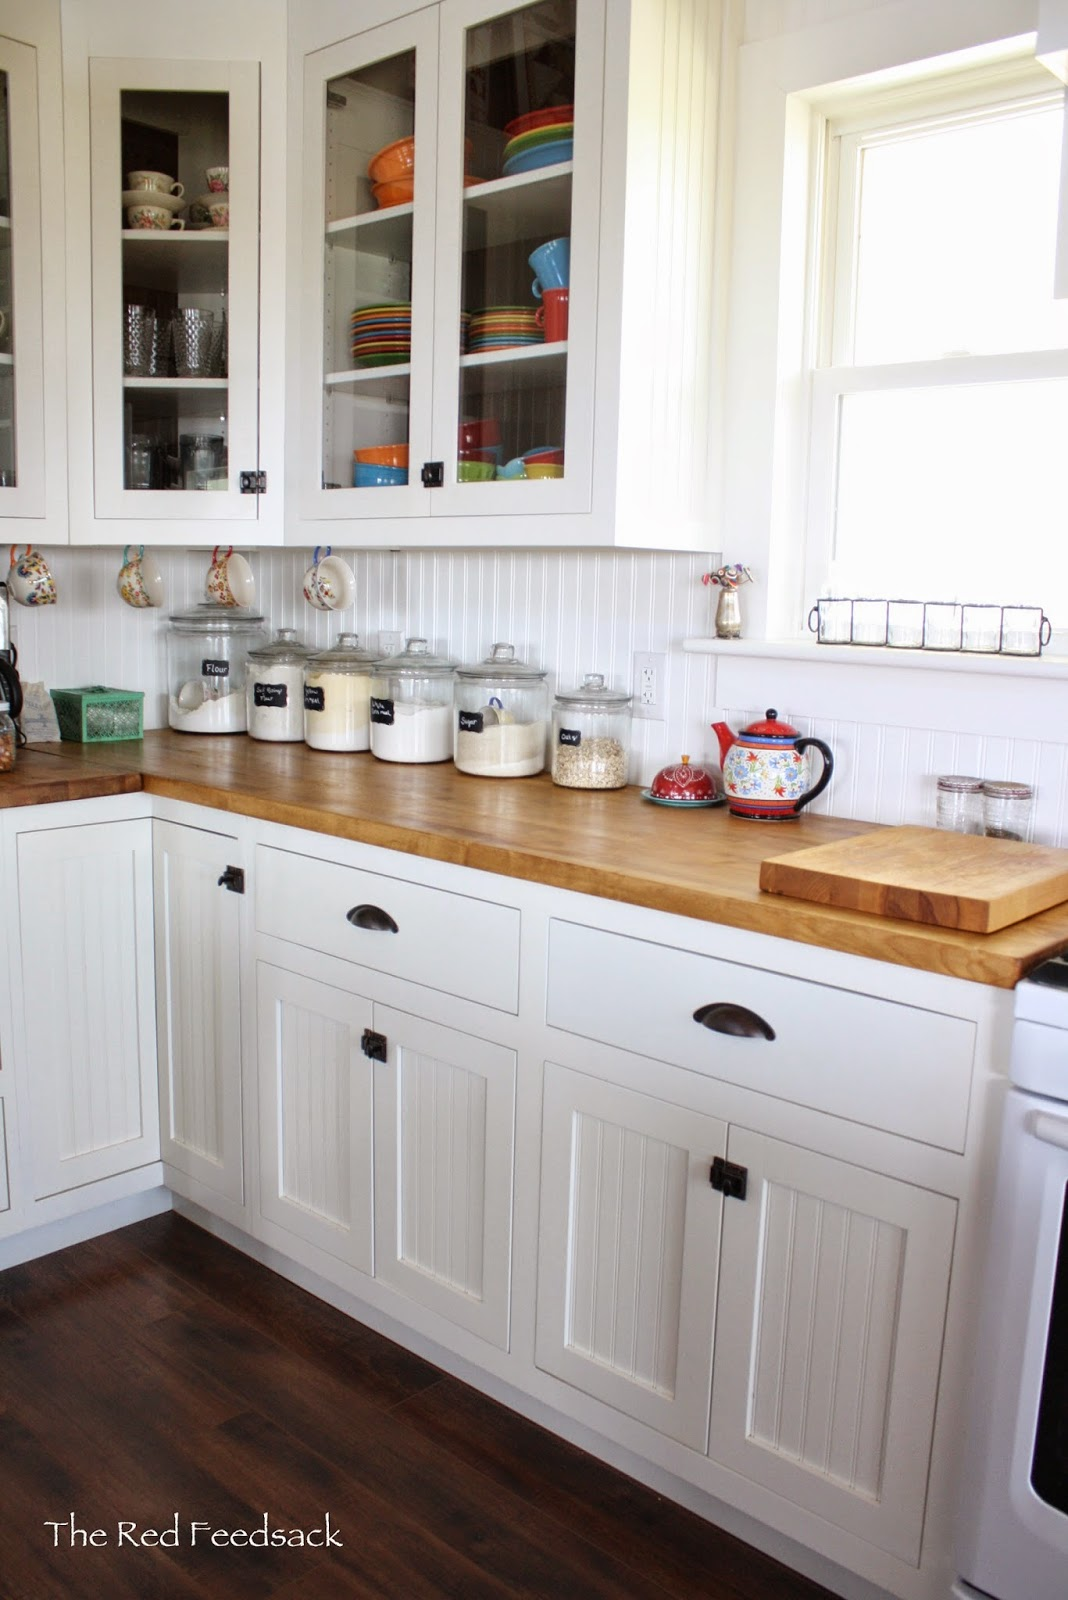 Butcher Block Counters White Kitchen : The Red Feedsack: Update On Butcher Block Countertops!